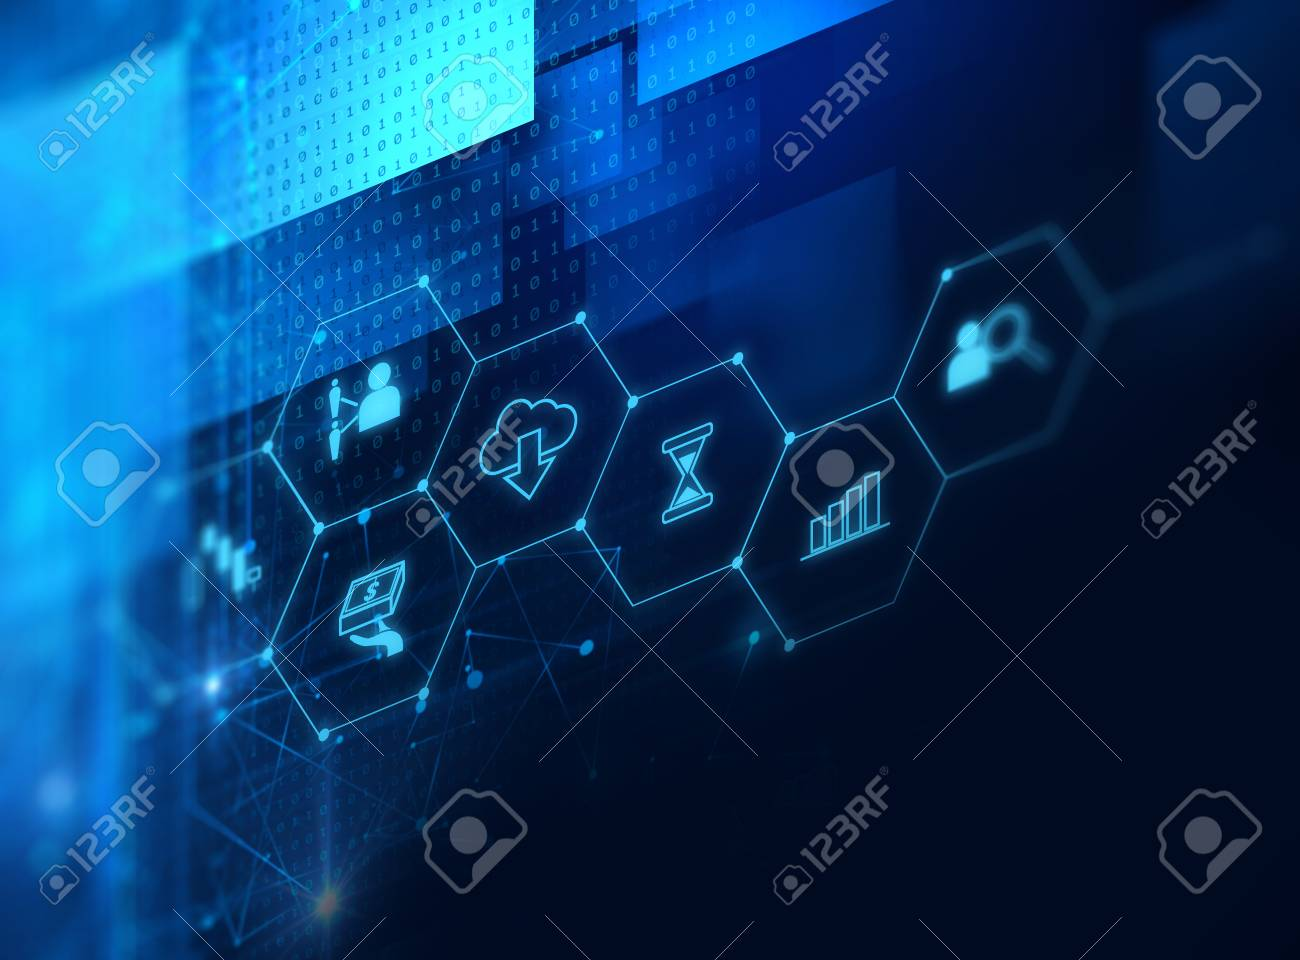 fintech icon on abstract financial technology background represent Blockchain and Fintech Investment Financial Internet Technology Concept. - 80676790